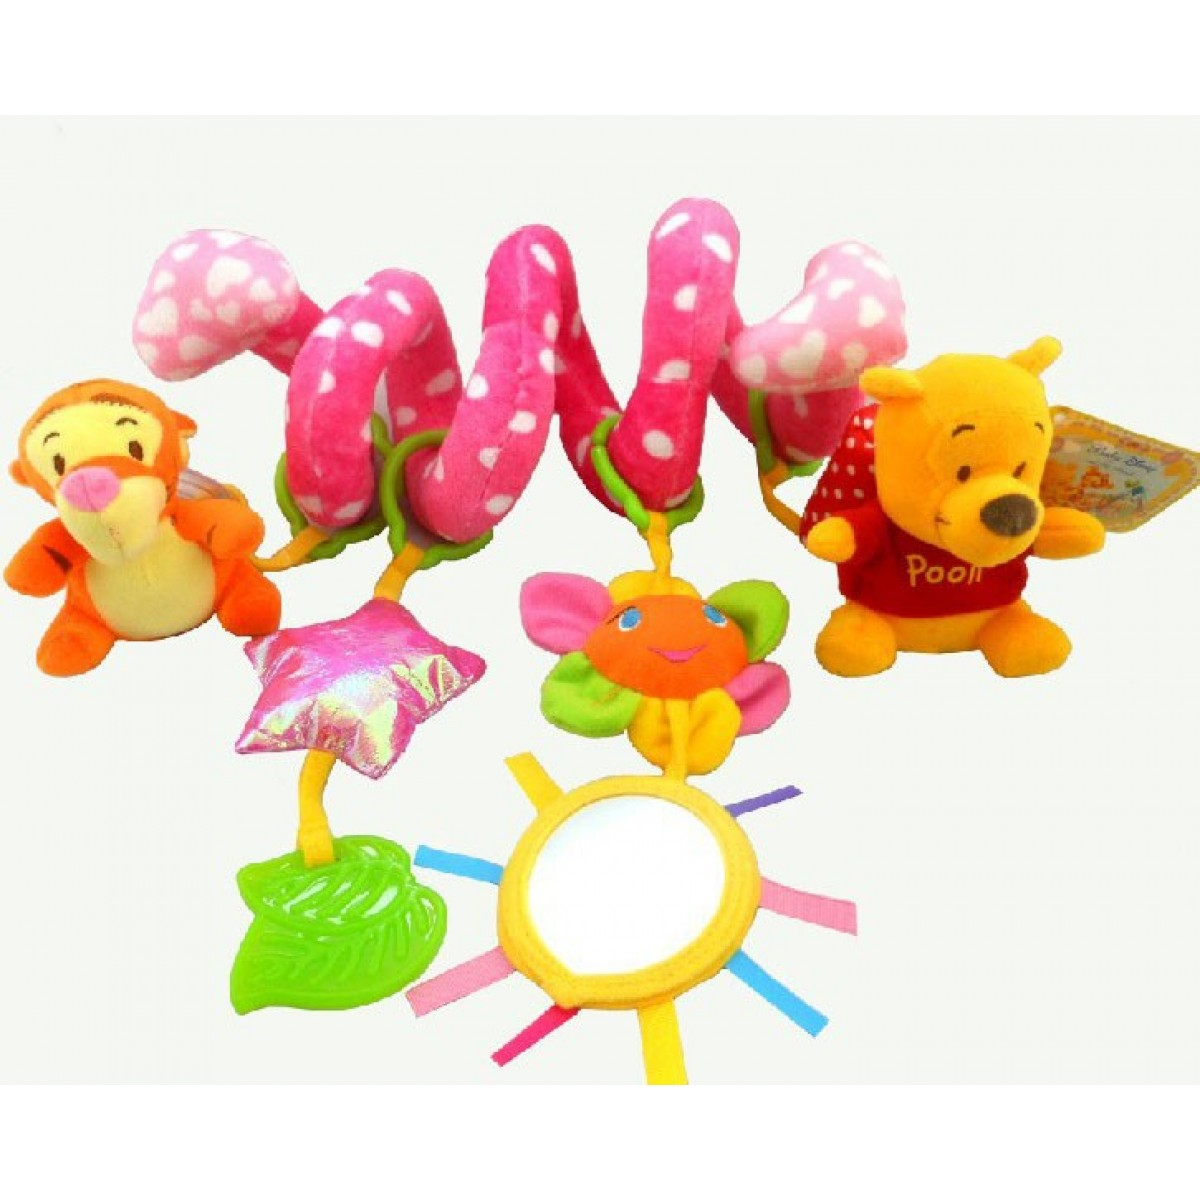 Baby Toys Sale Cheap Activity Spiral Baby Toys Sale Online With Free